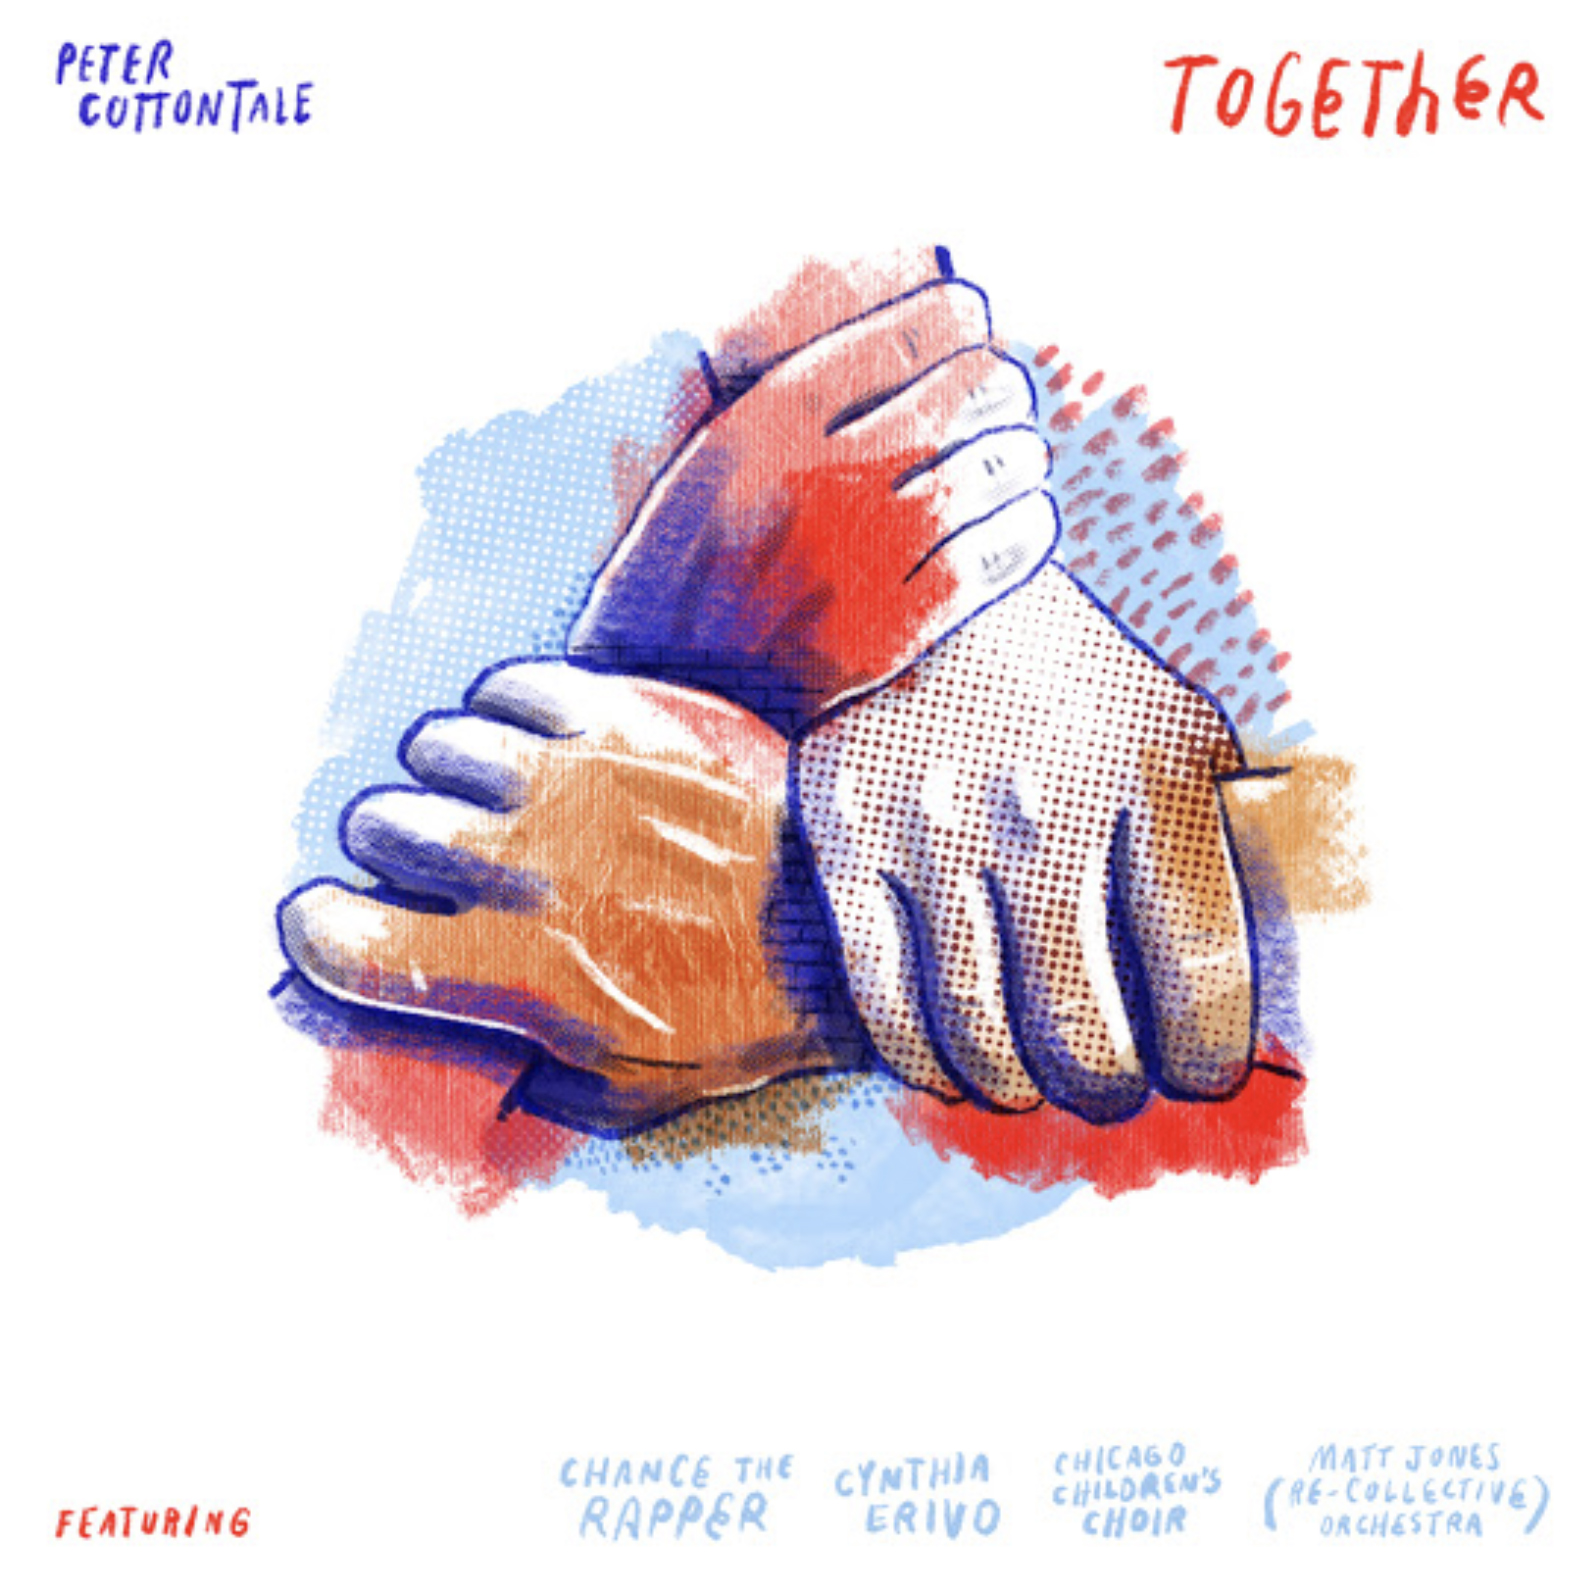 Peter-CottonTale-Together